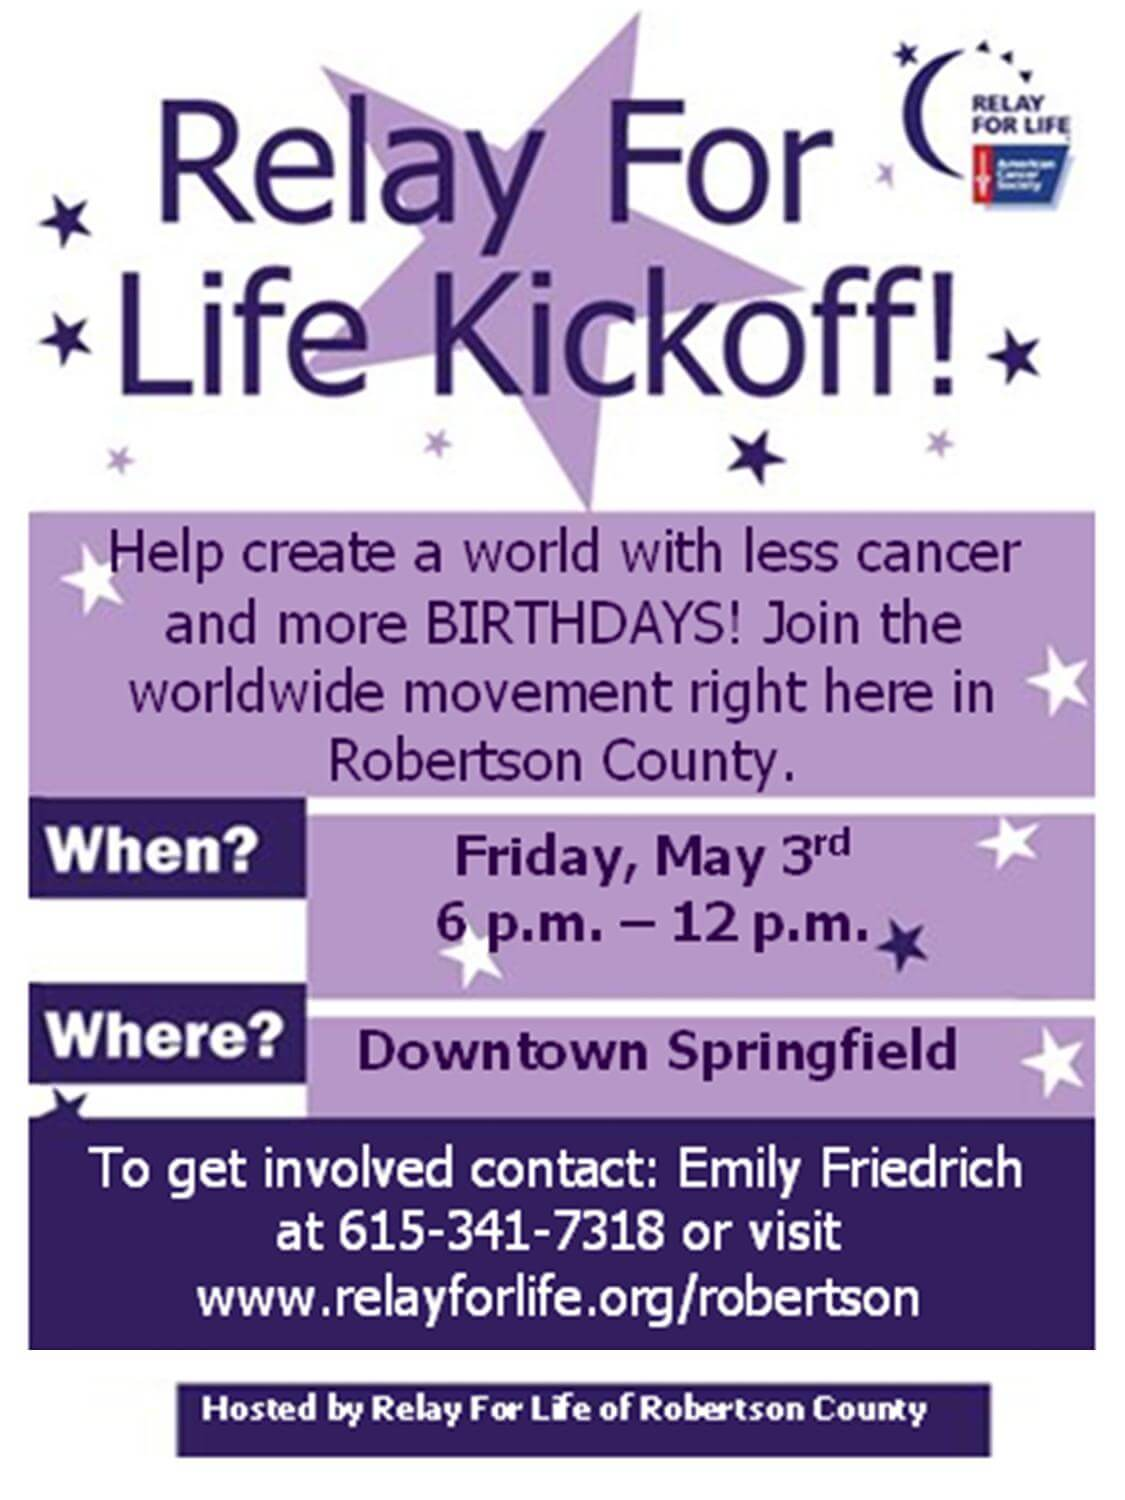 Relay for life kickoff may 3 2013 for Relay for life flyer template